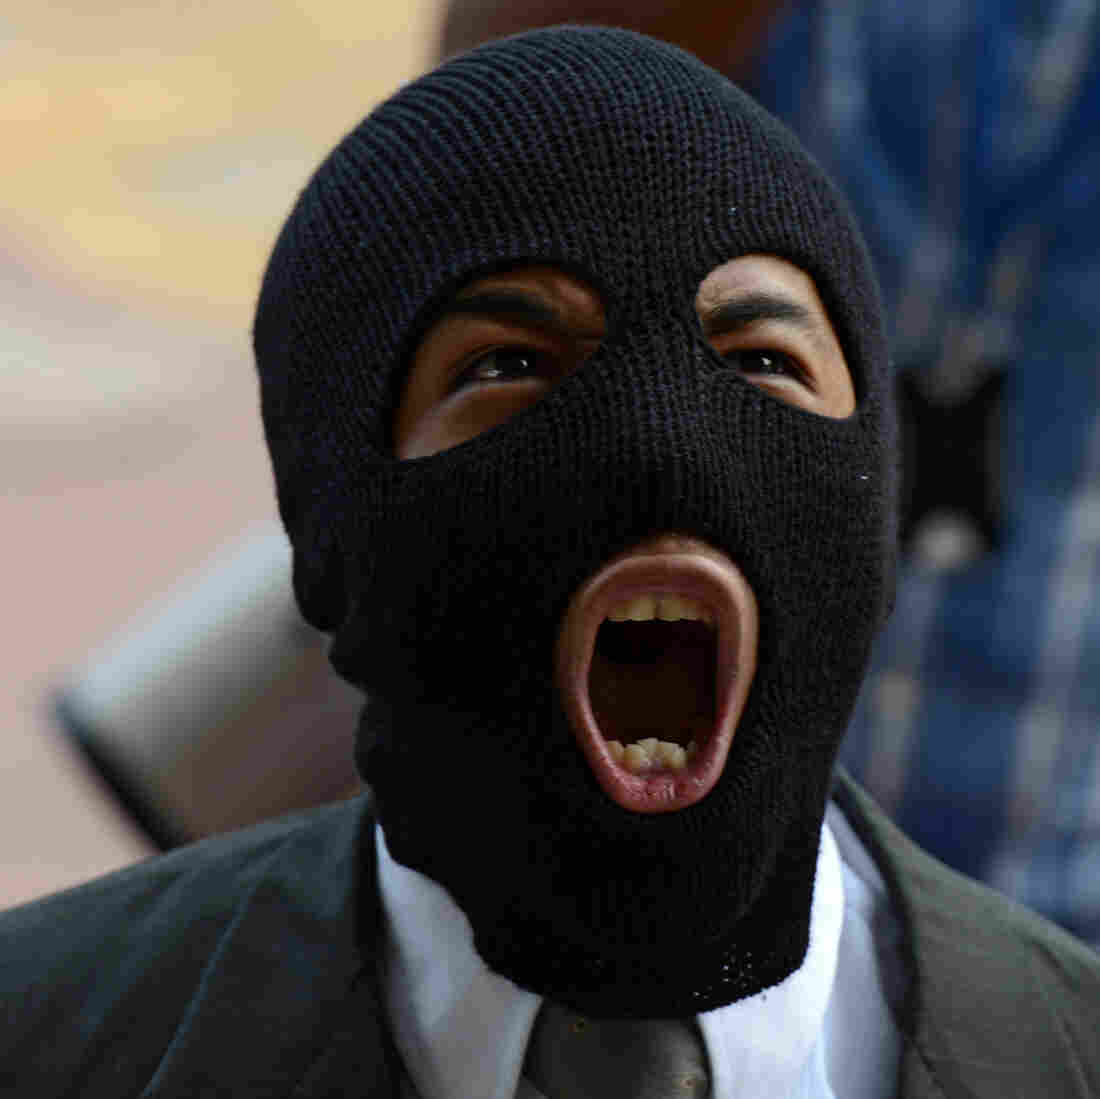 A balaclava-clad protester shouts anti-government slogans during a rally in Honduras.